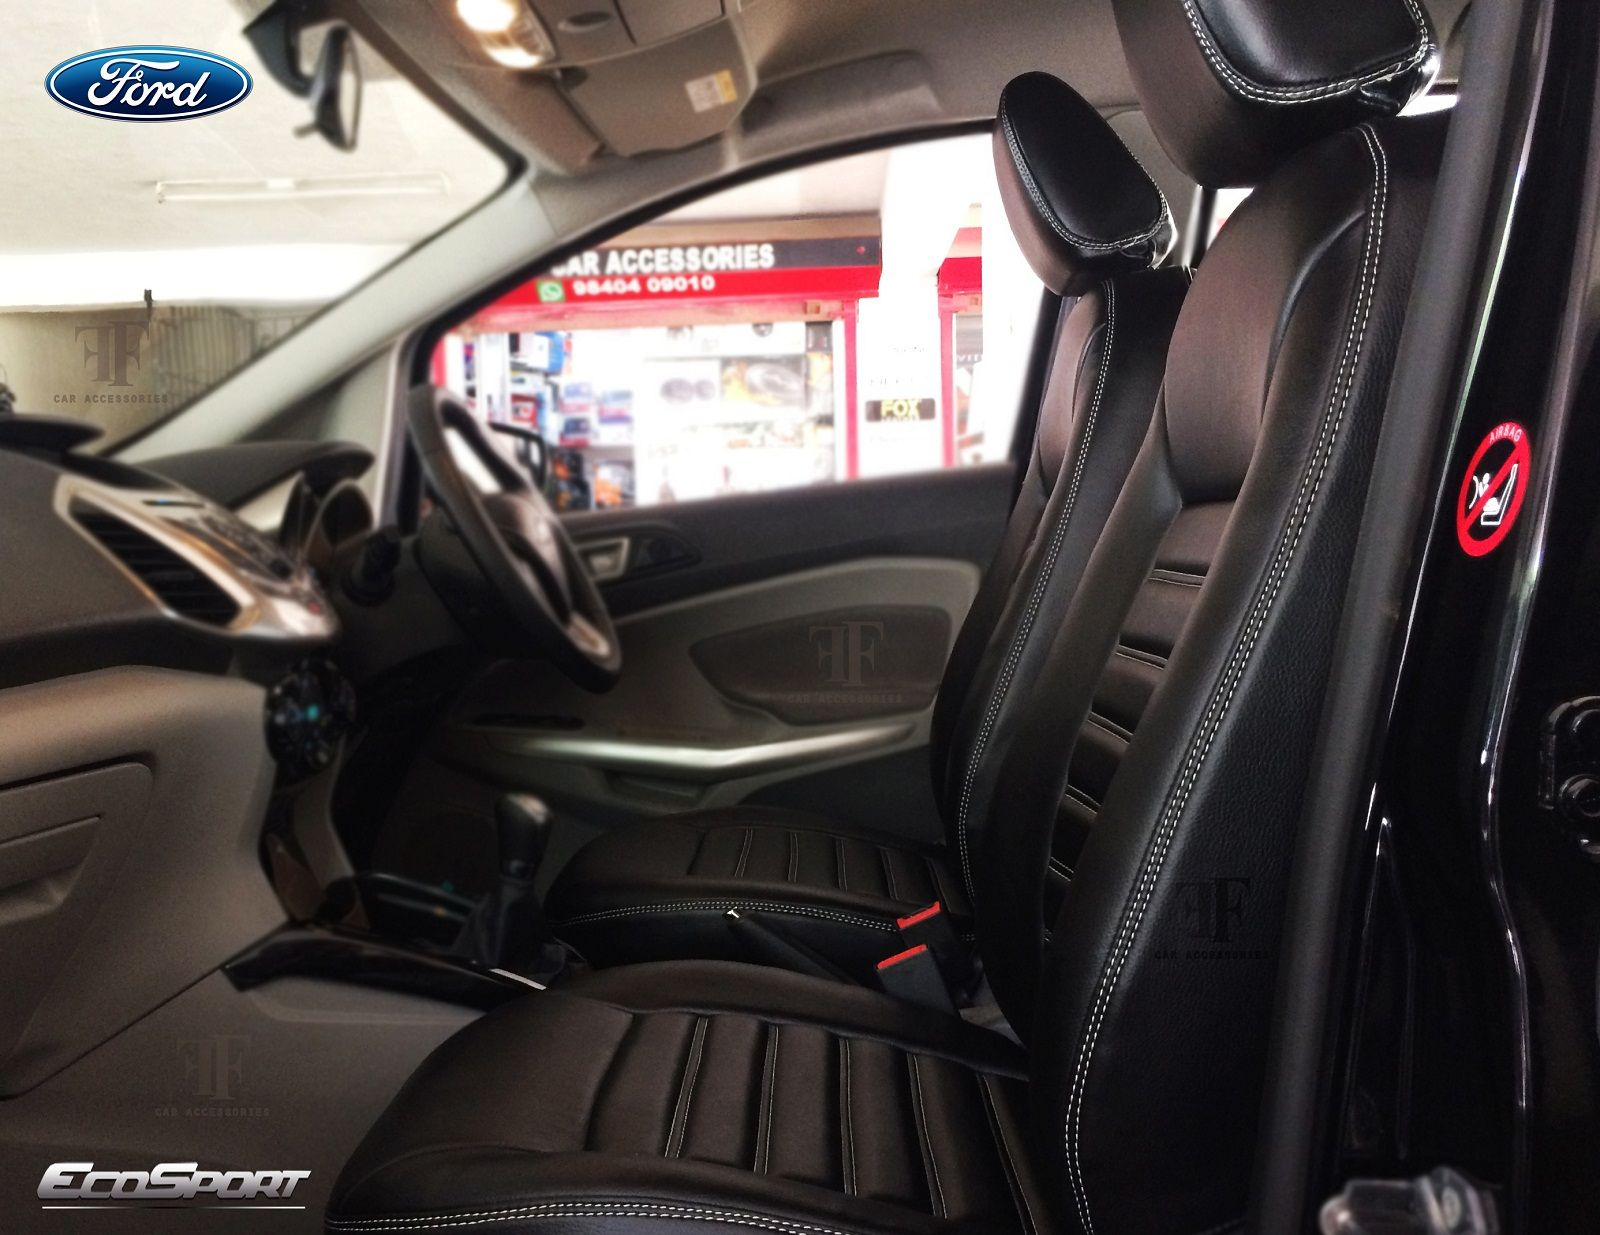 Tailor Made Seat Cover For Ford Ecosport Designed And Installed By